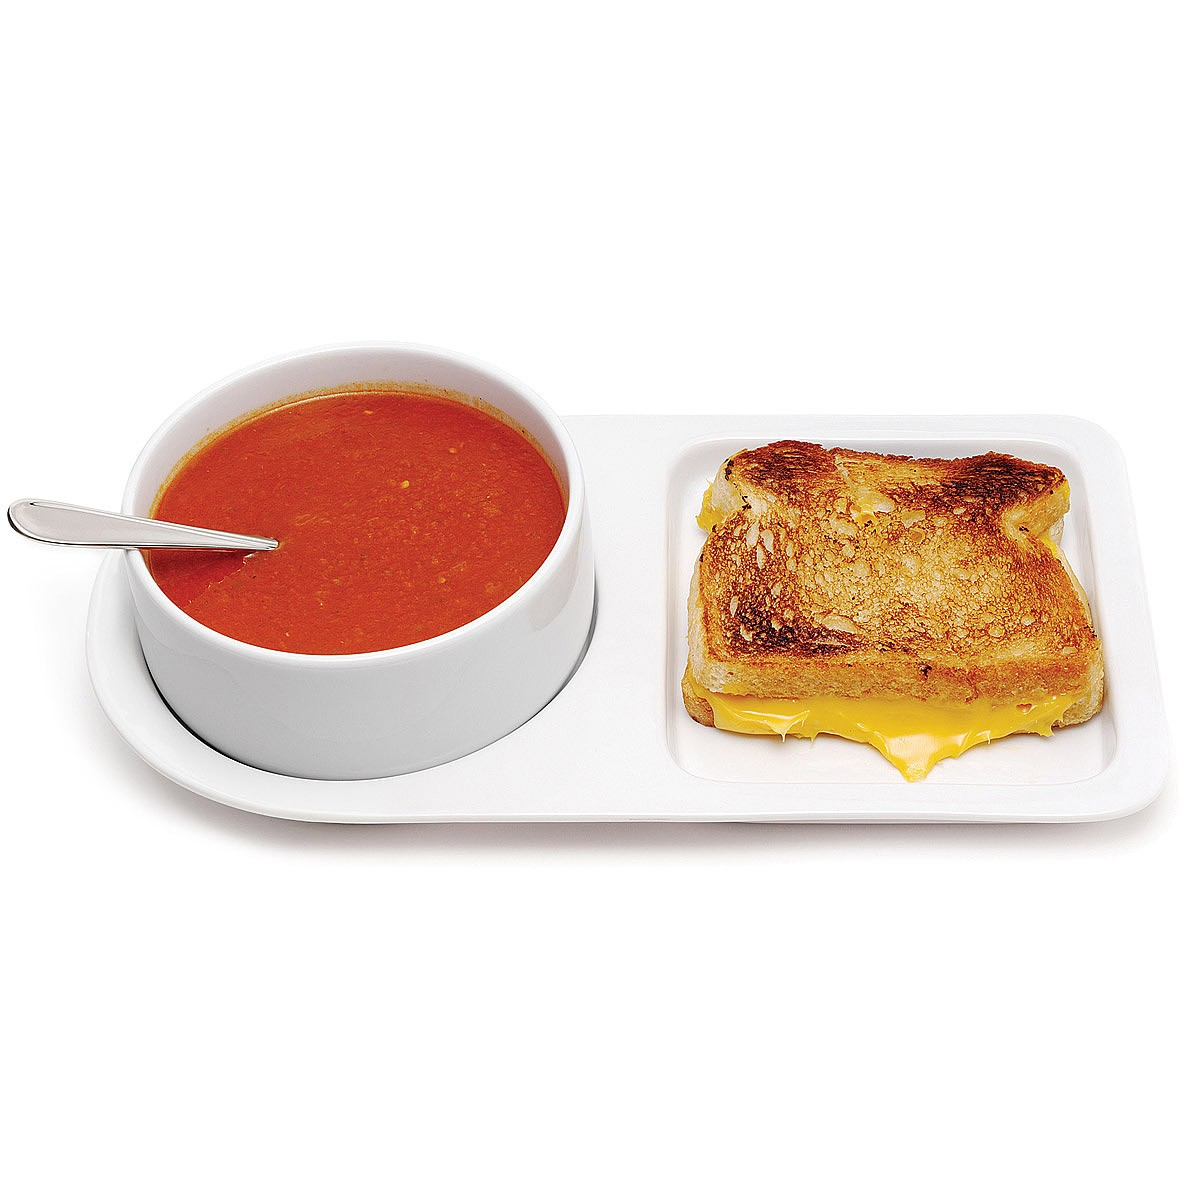 Apartminty Fresh Apartment Picks | Apartment Decor | Soup and Sandwich Ceramic Tray Duo